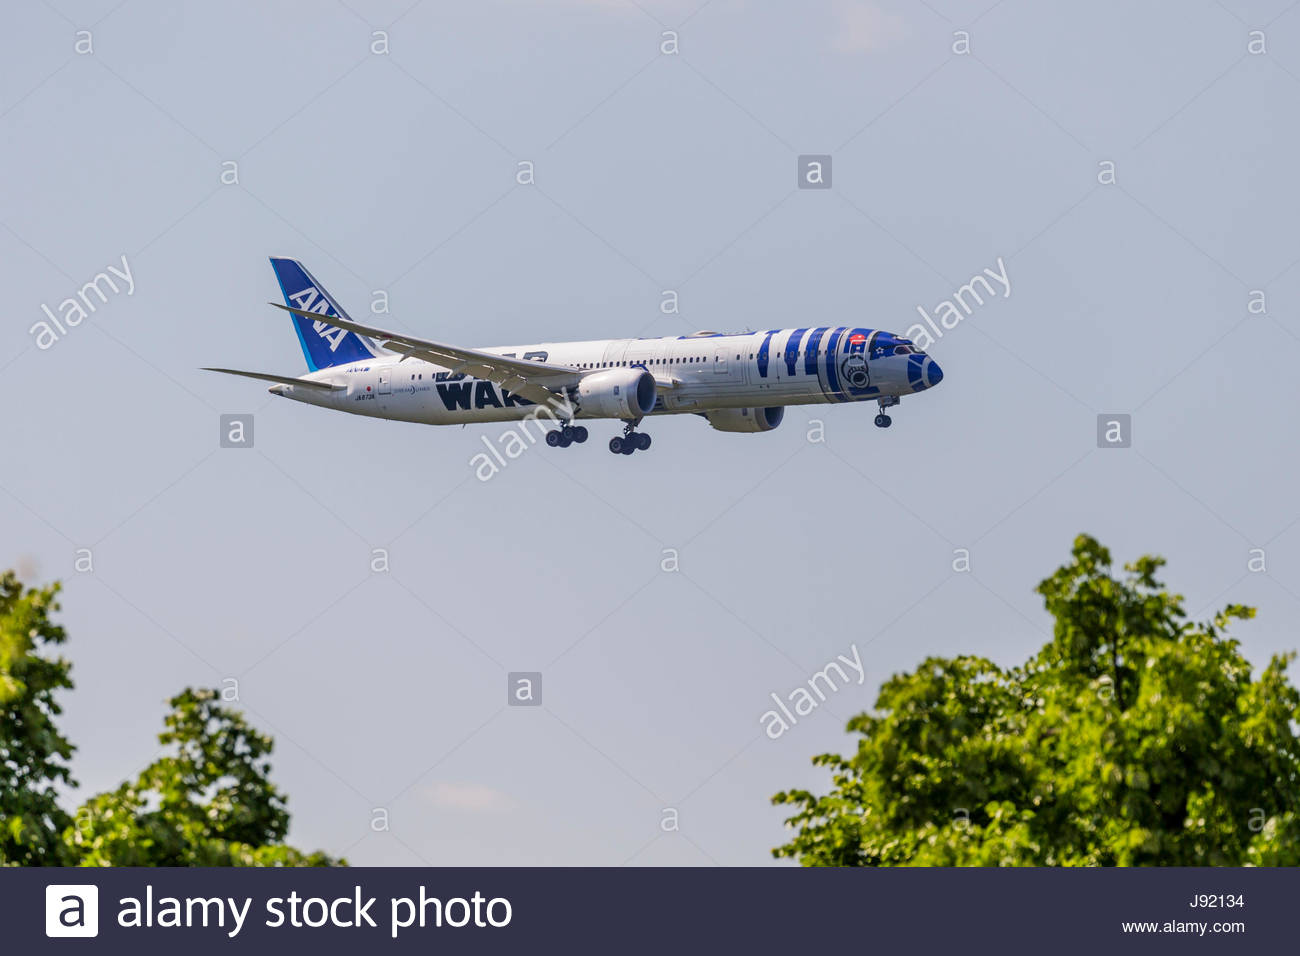 ANA Boeing 787-9 Dreamliner Starwars character R2-D2 livery long-haul jet airliner approaching Duesseldorf airport - Stock Image